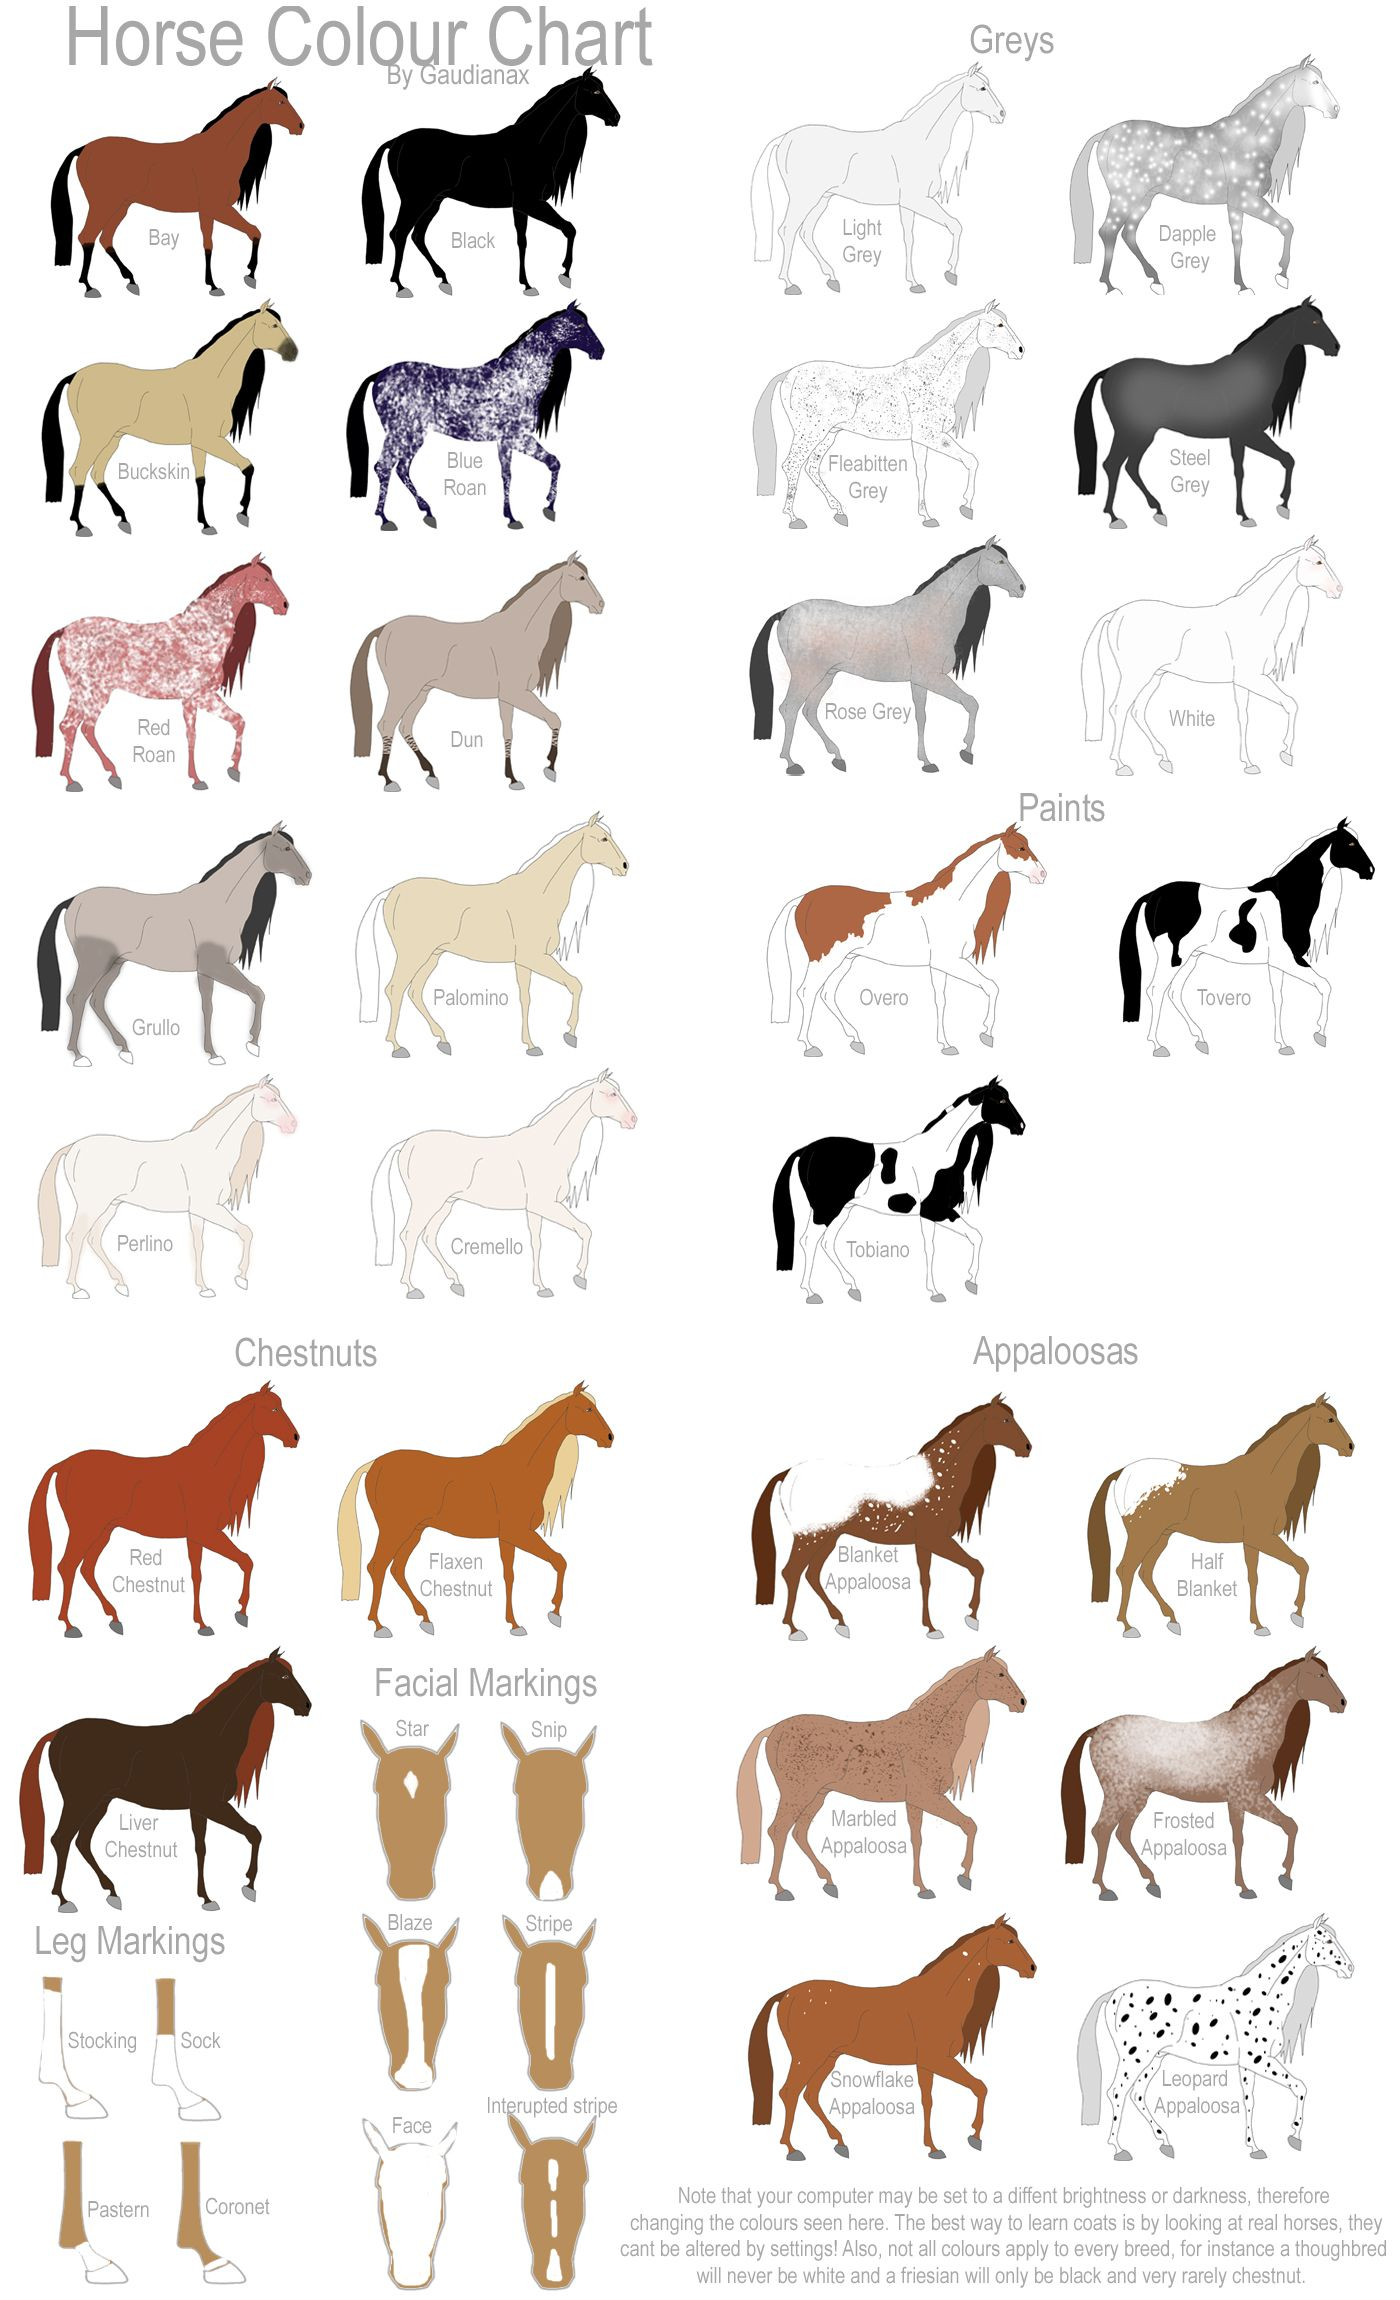 miniature show horse horse colour chart by gaurdianax places